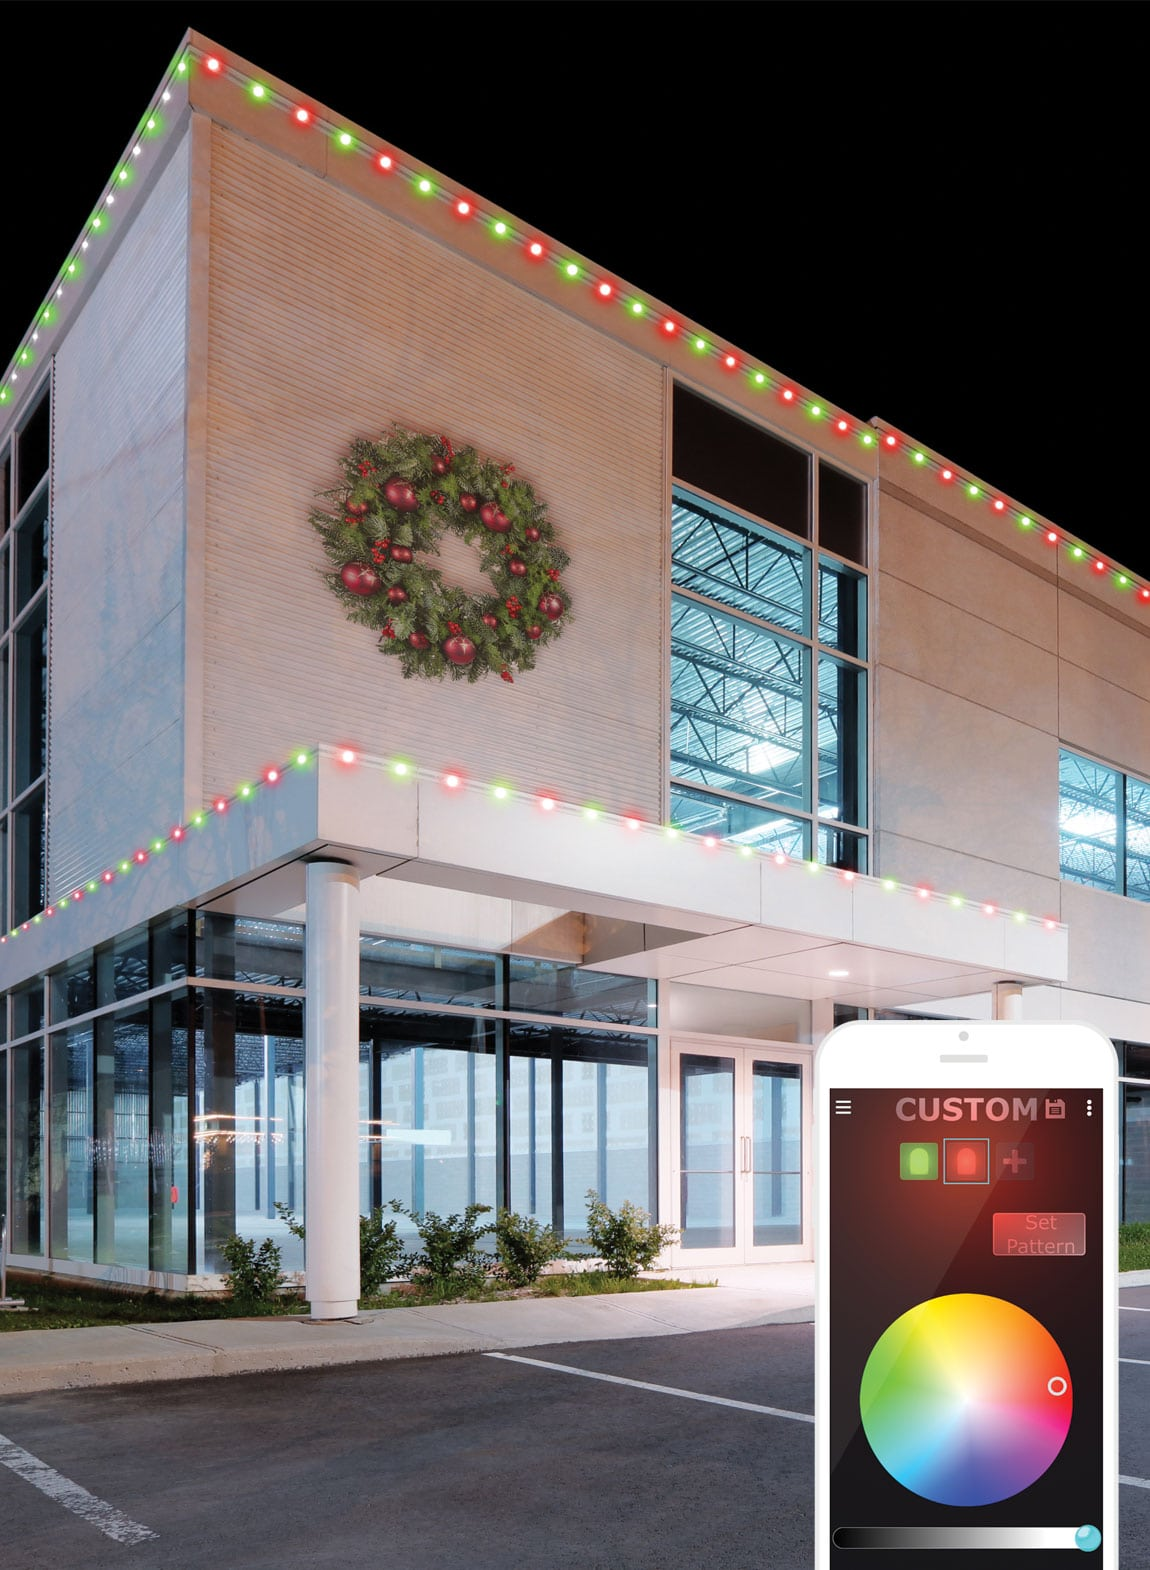 Commercial Led Lighting Solutions Outdoor Commercial